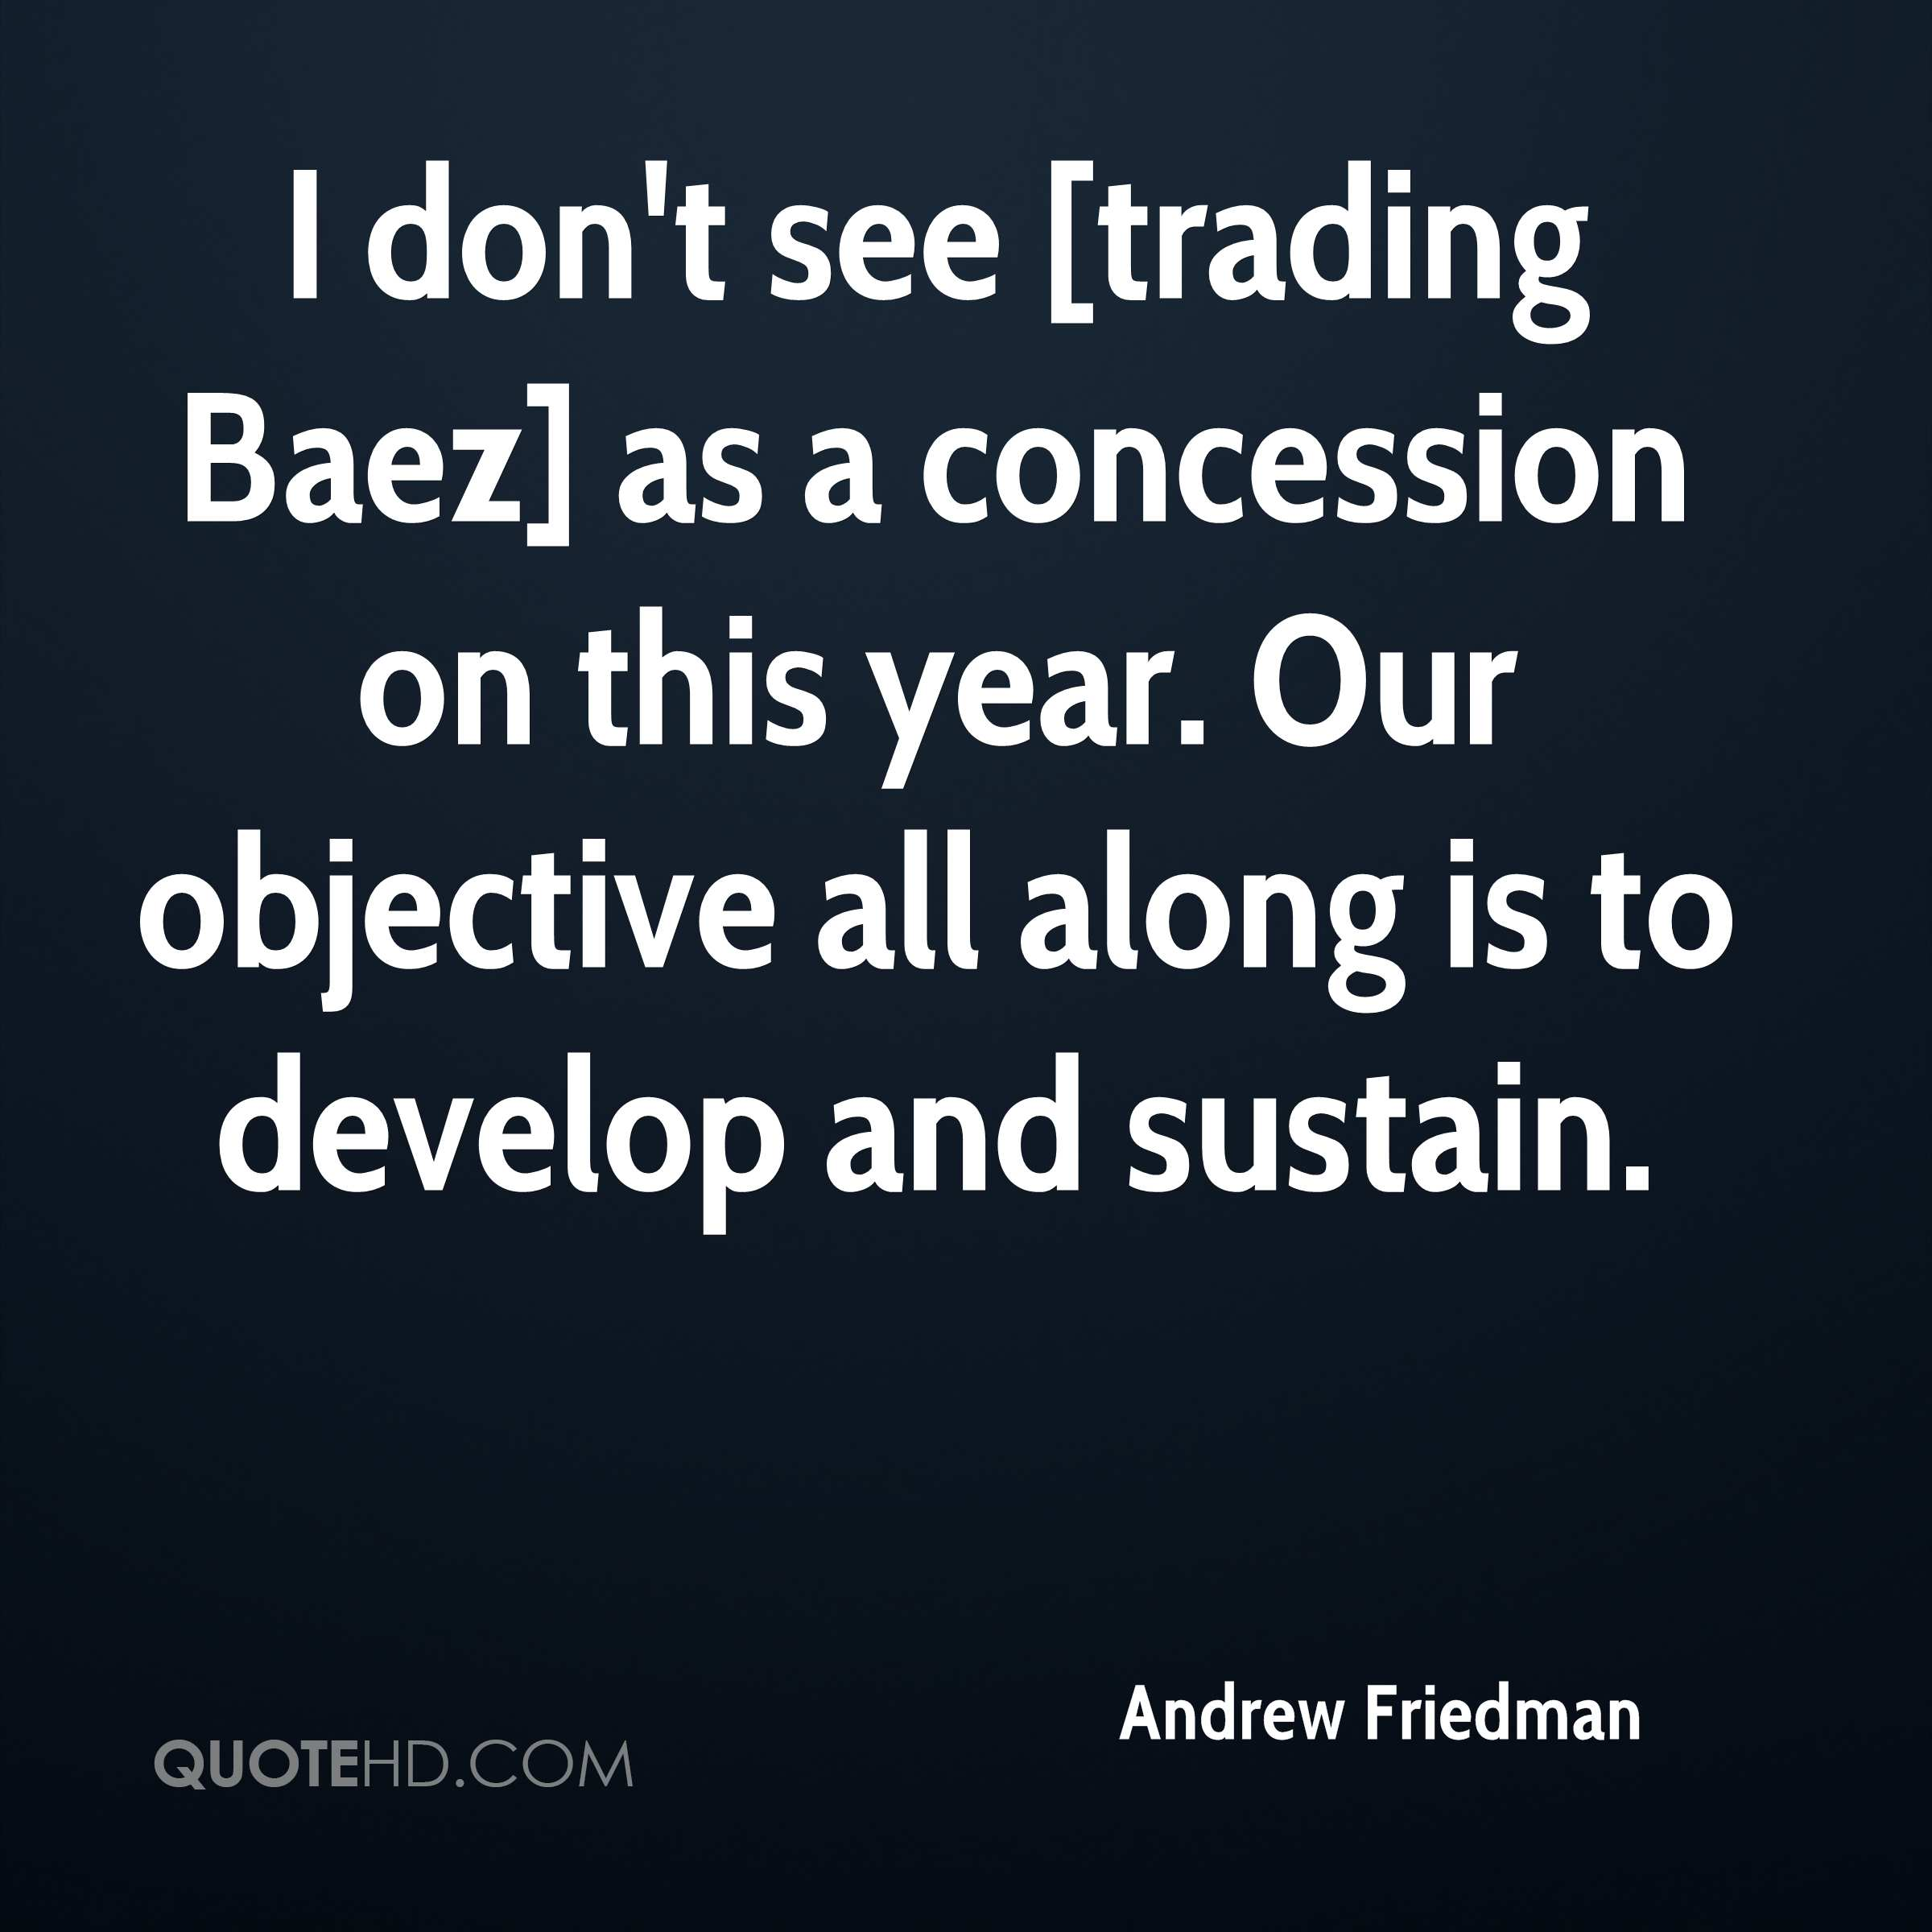 I don't see [trading Baez] as a concession on this year. Our objective all along is to develop and sustain.